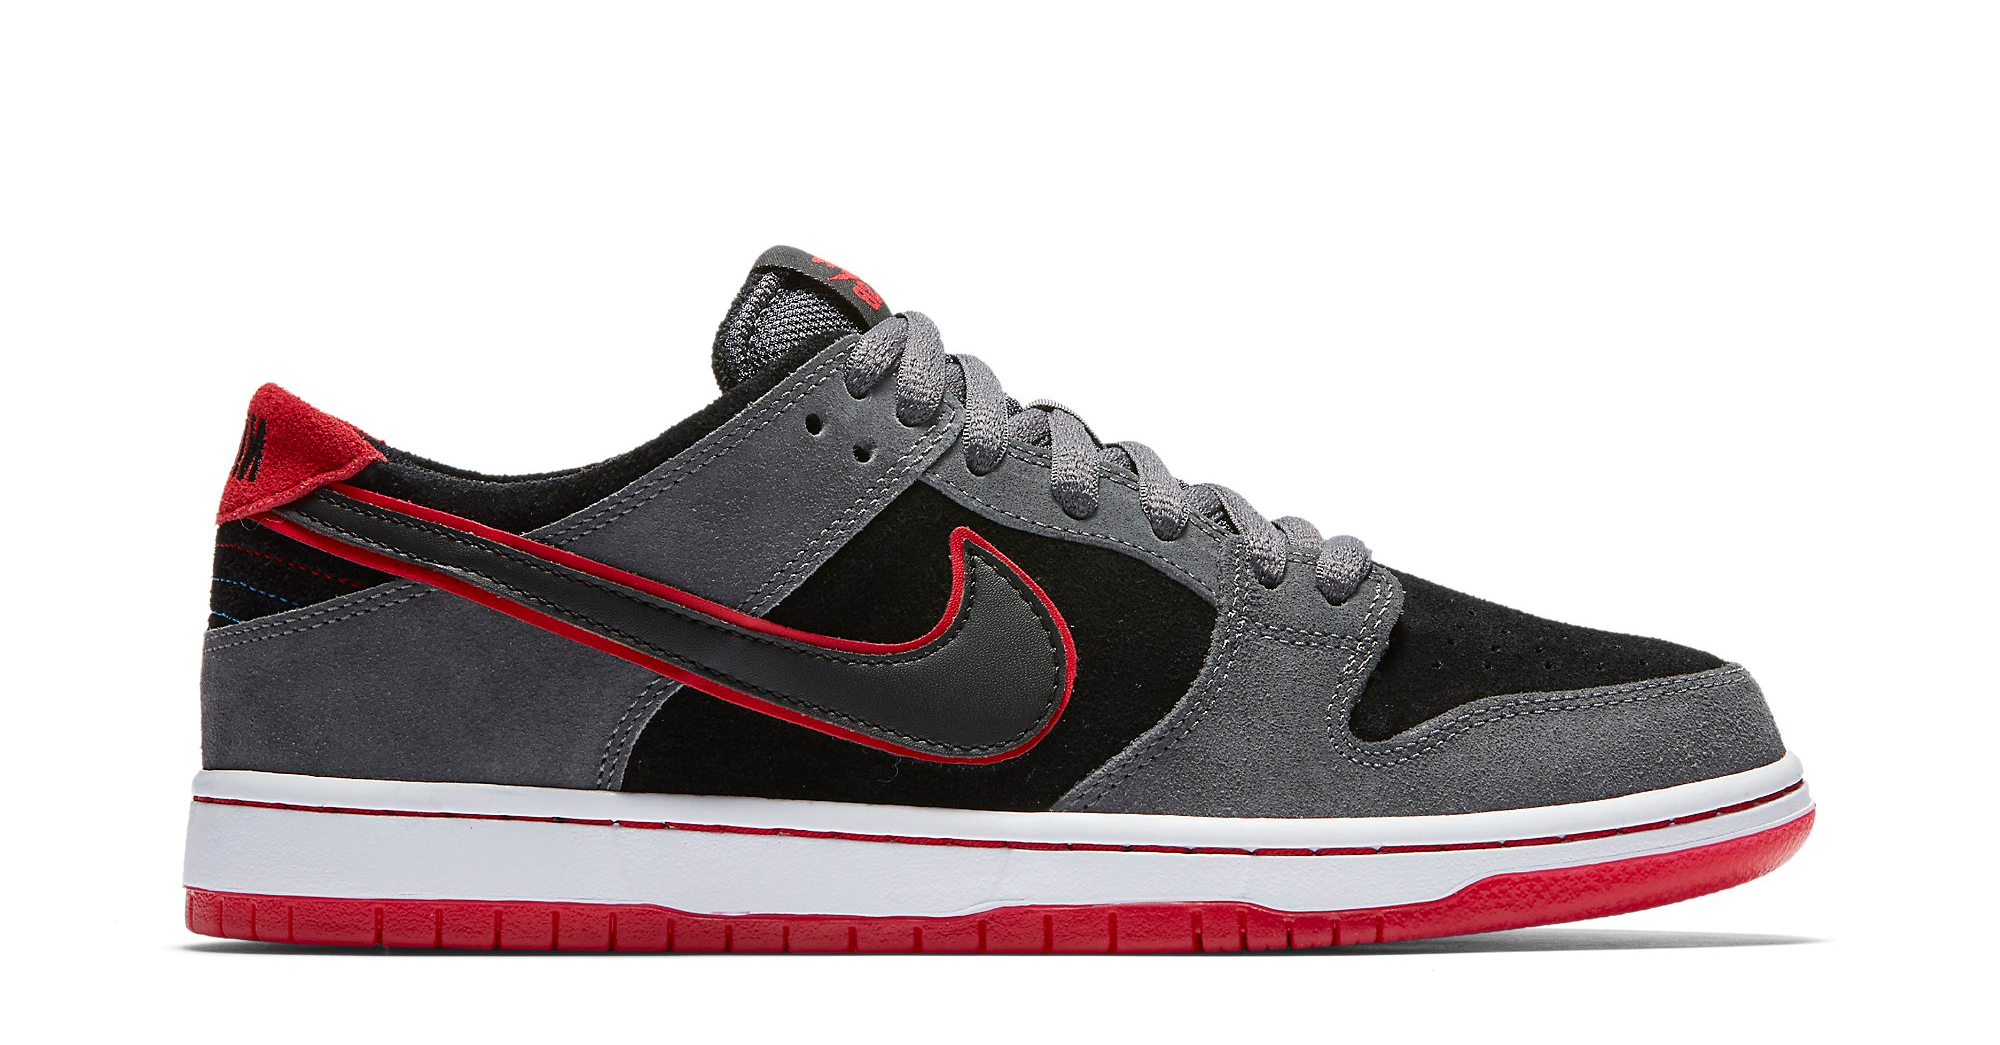 4494ba7ab1b6 Nike SB Dunk Low Pro Ishod Wair Dark Grey - StockX News